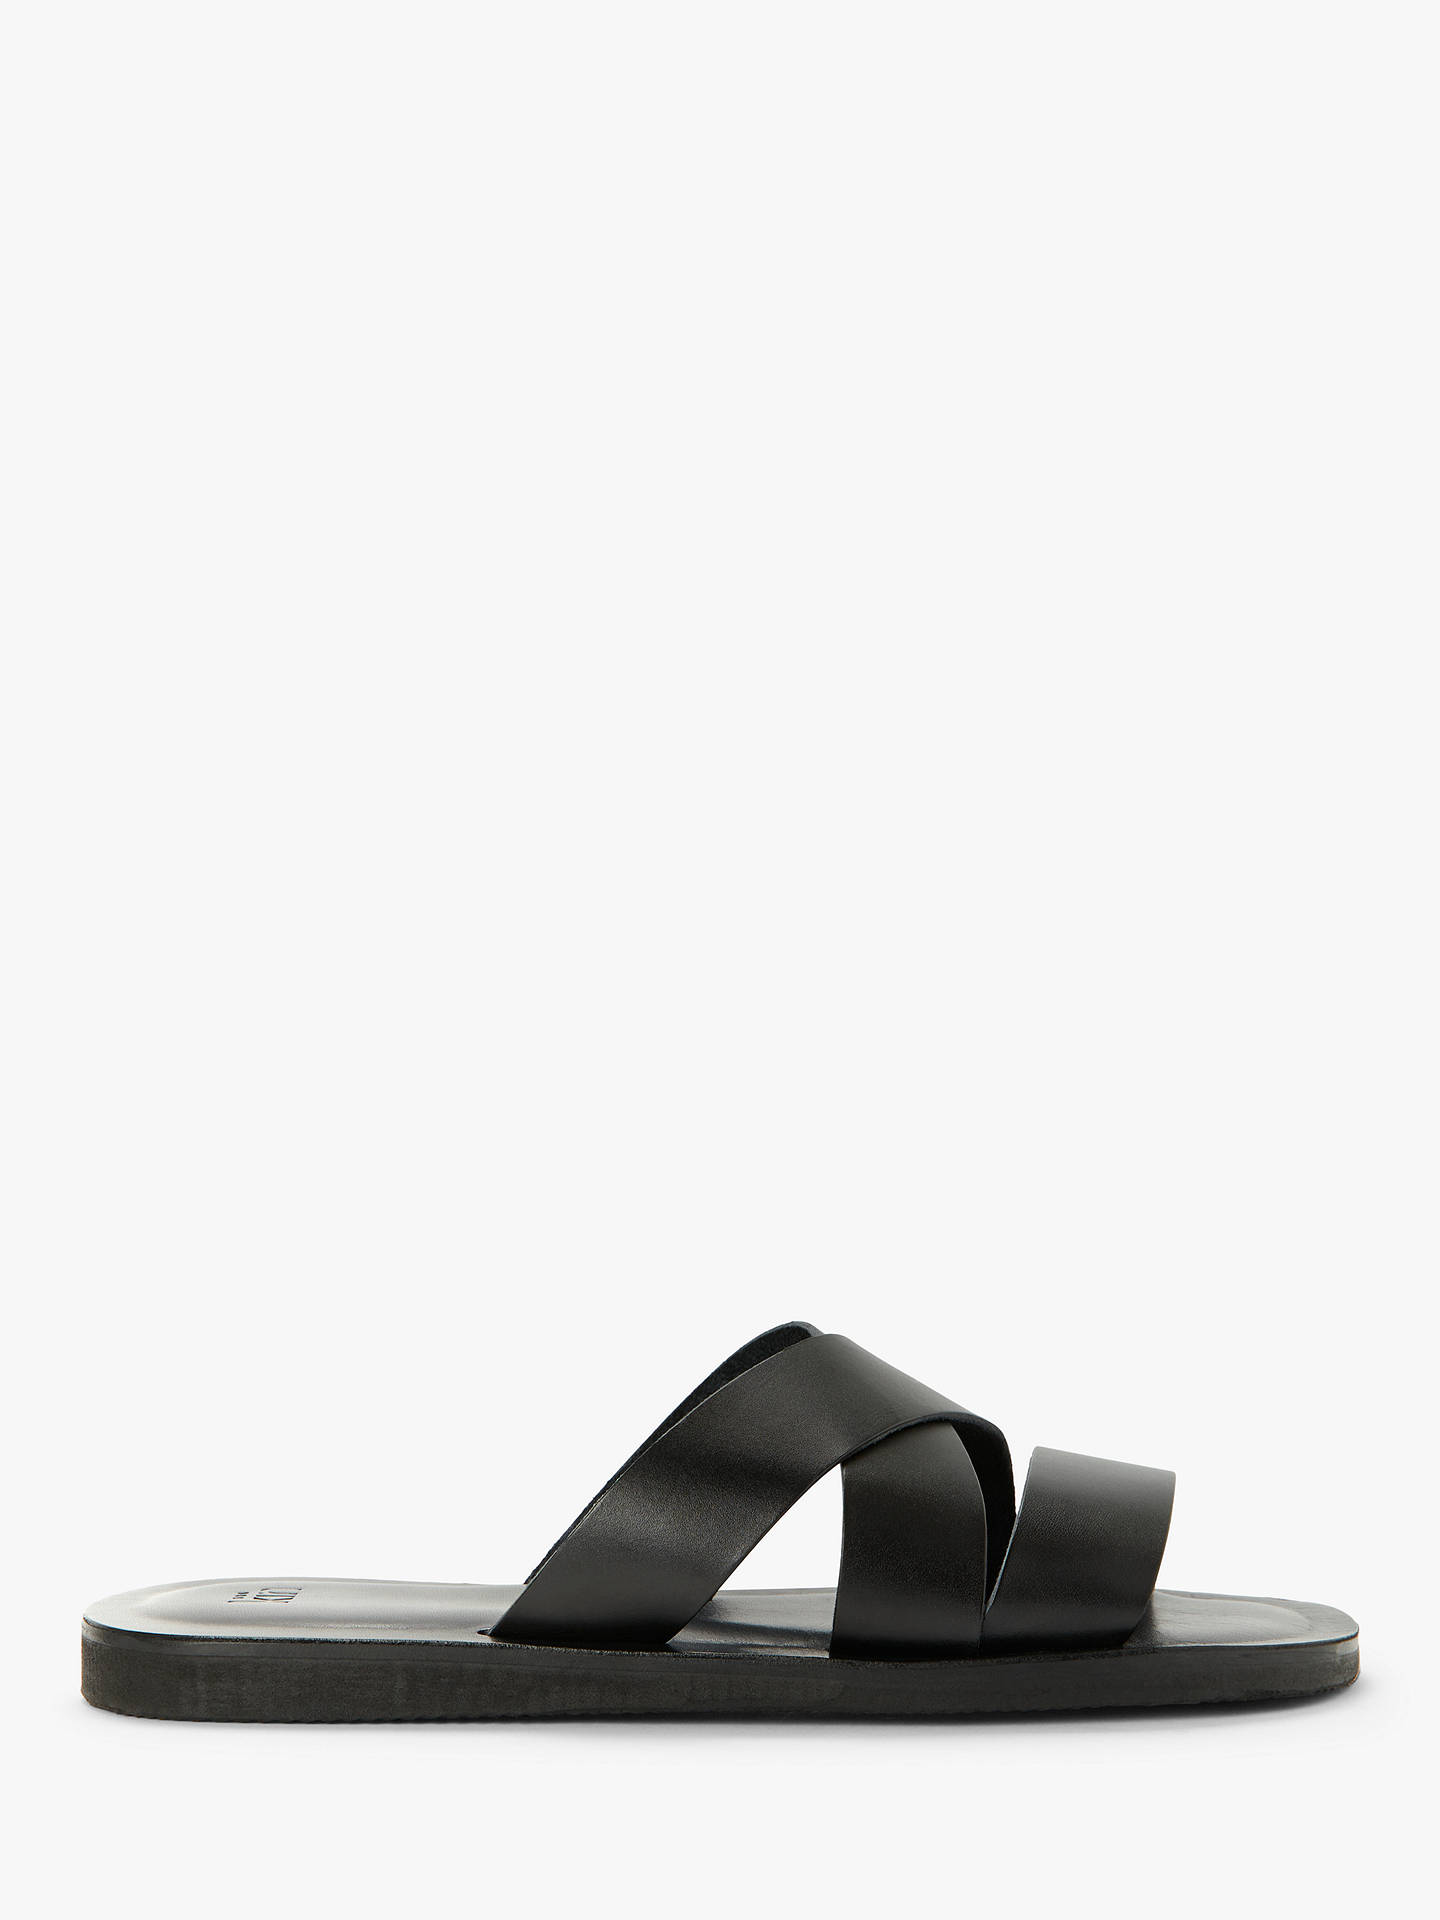 35f213ad0af Kin Made in Italy Leather Cross Sandals, Black at John Lewis & Partners